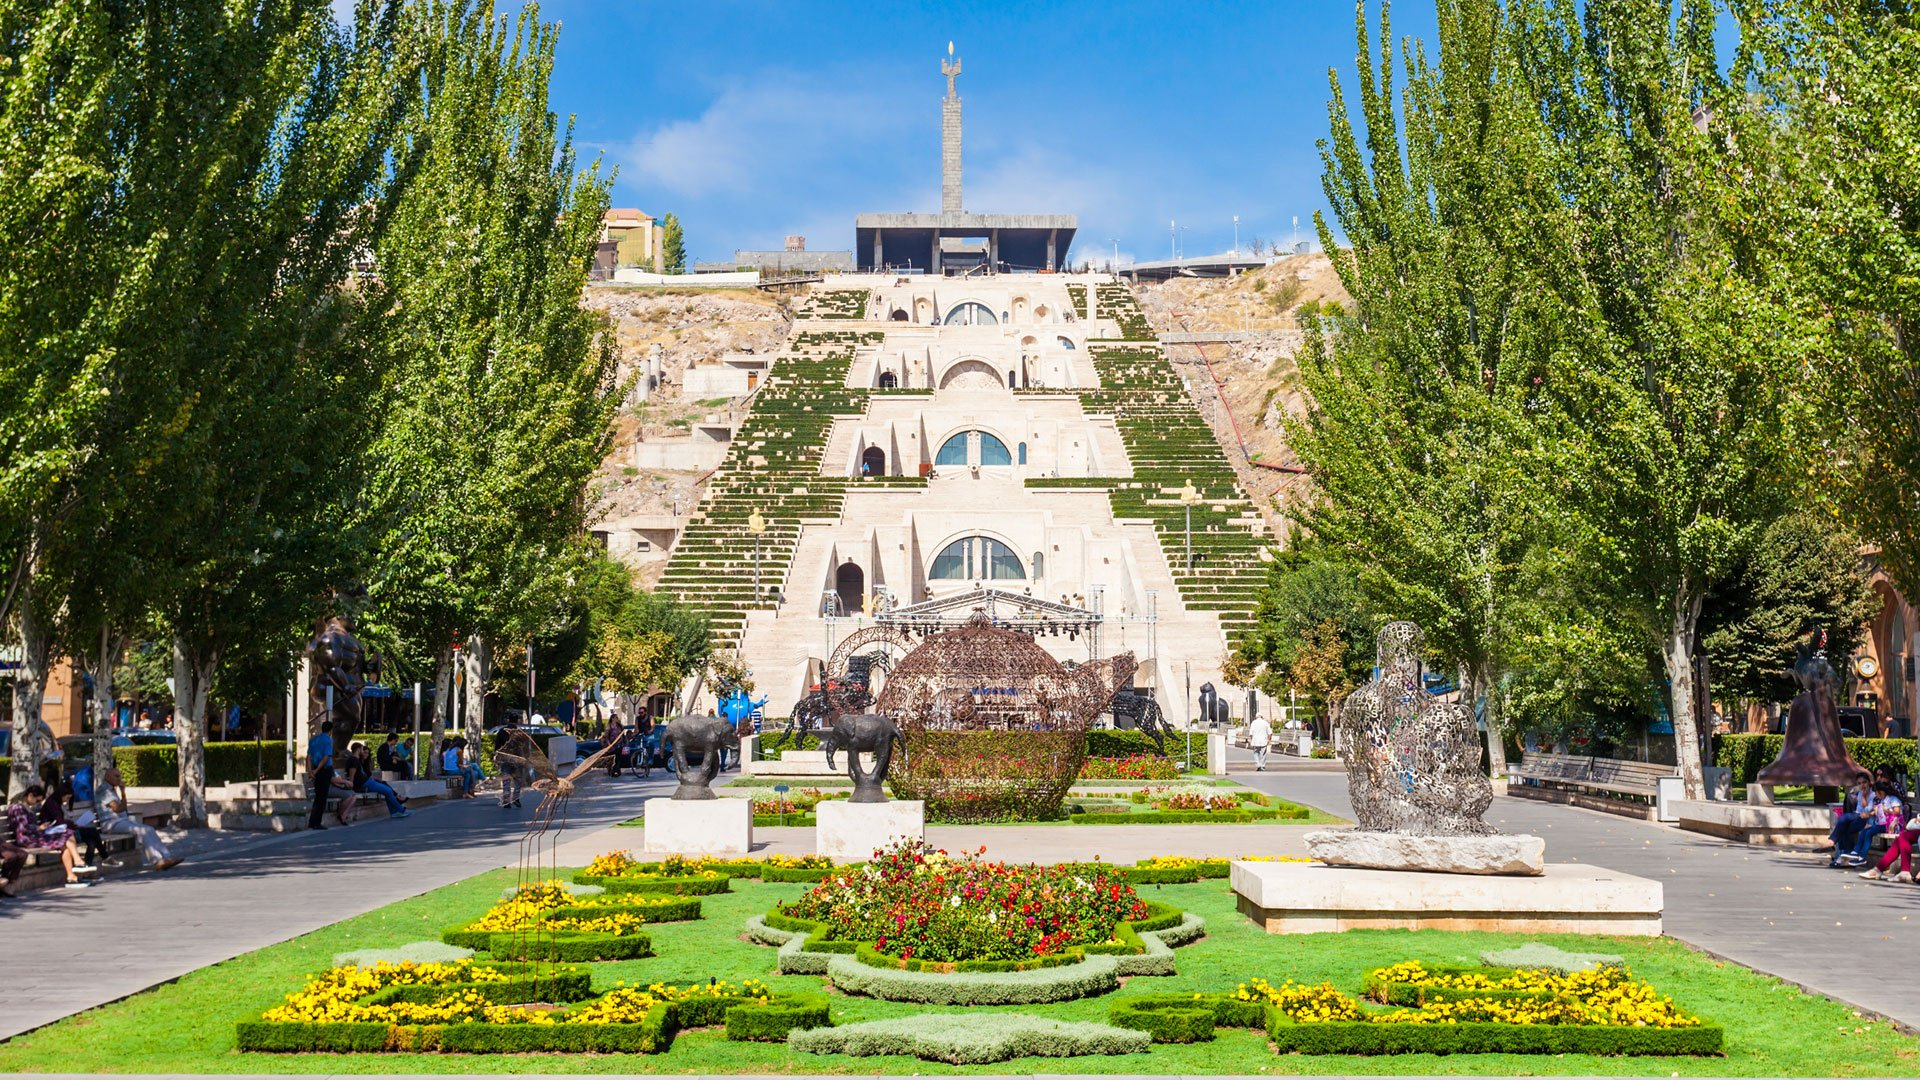 Creative Yerevan: the people and places innovating contemporary culture